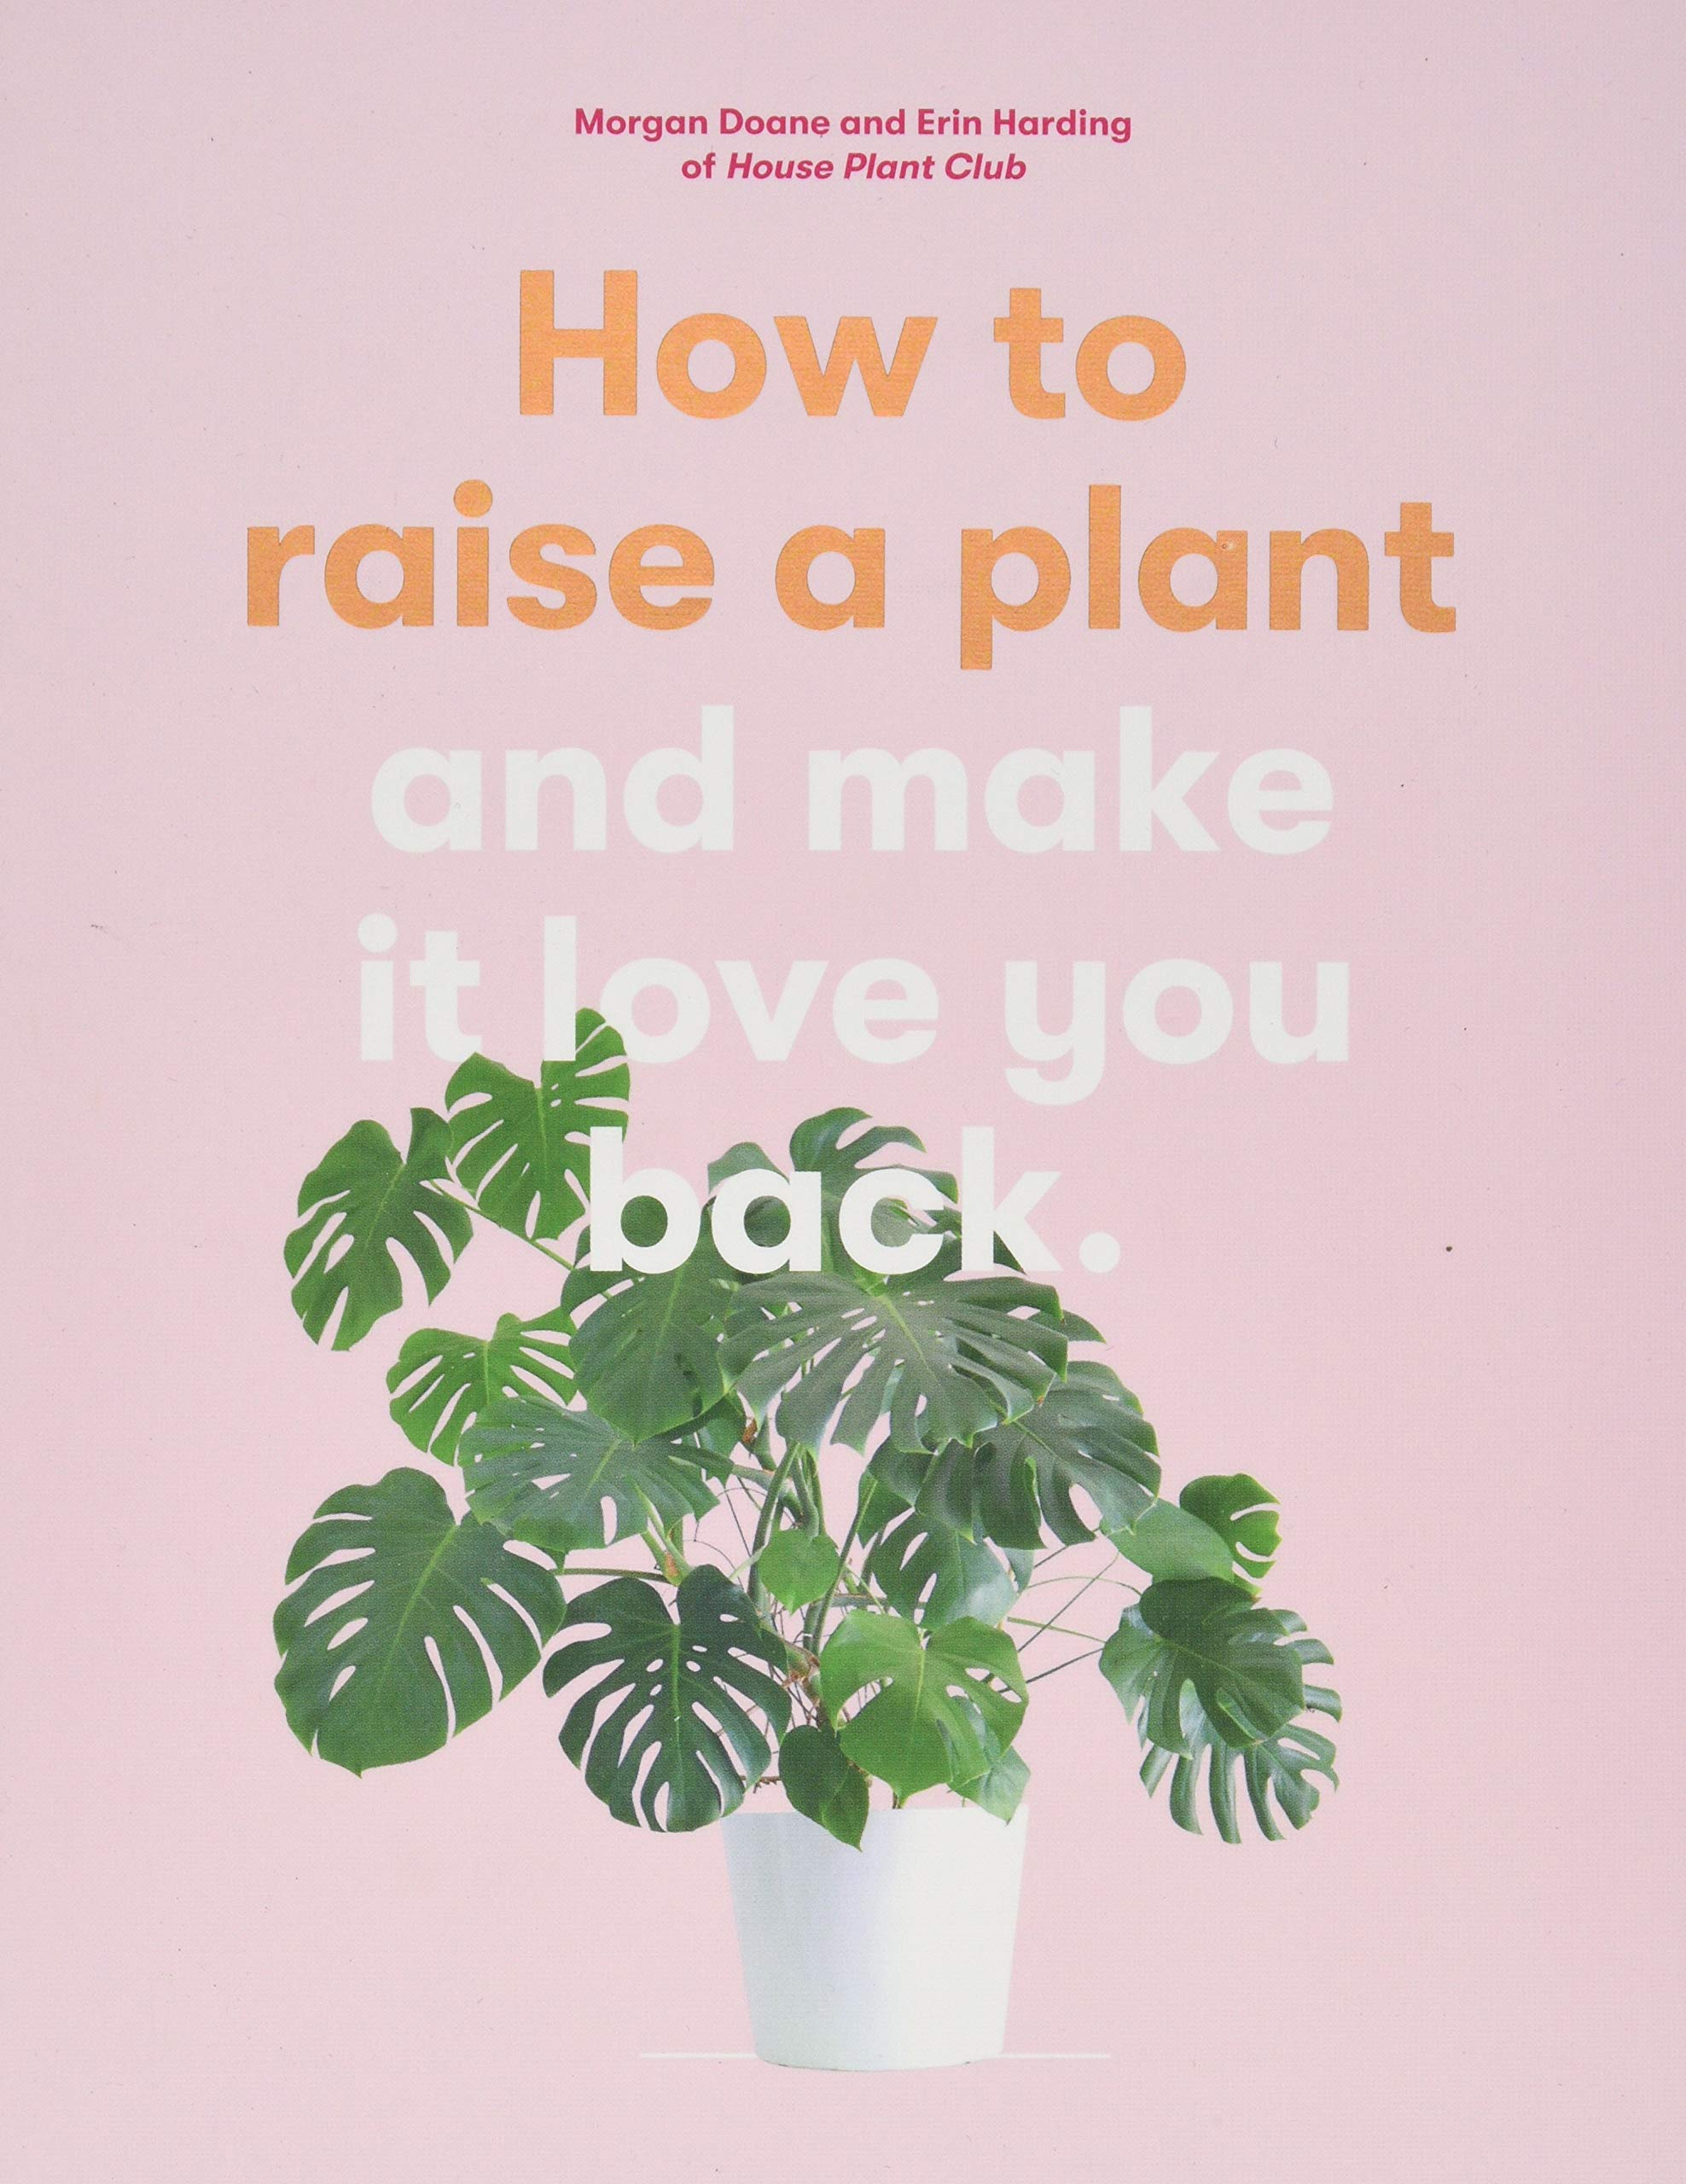 How to Raise a Plant and Make it Love You Back, €13,31, Morgan Doane e Erin Harding, no bookdepository.com